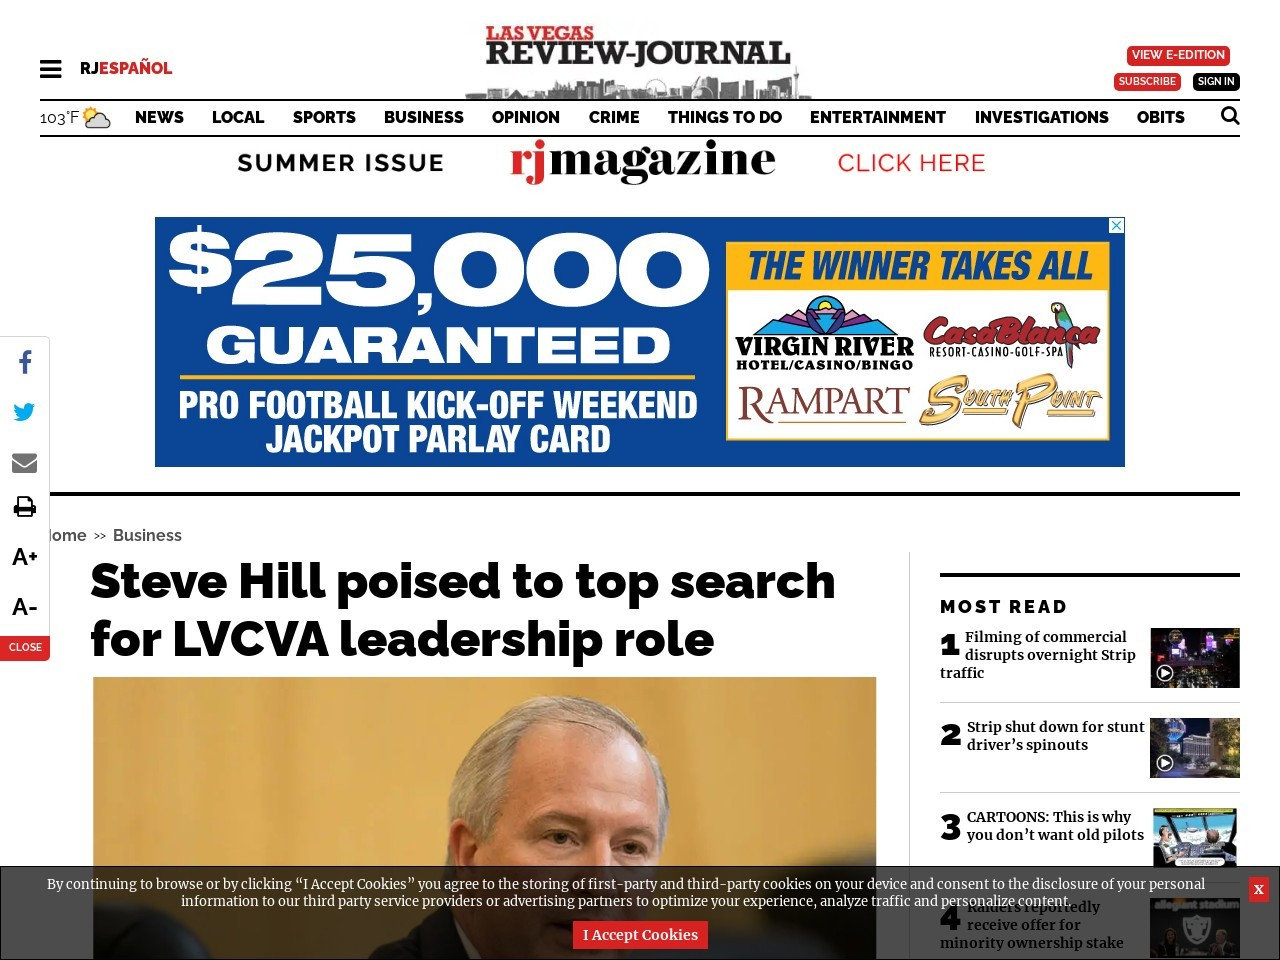 Steve Hill poised to top search for LVCVA leadership role